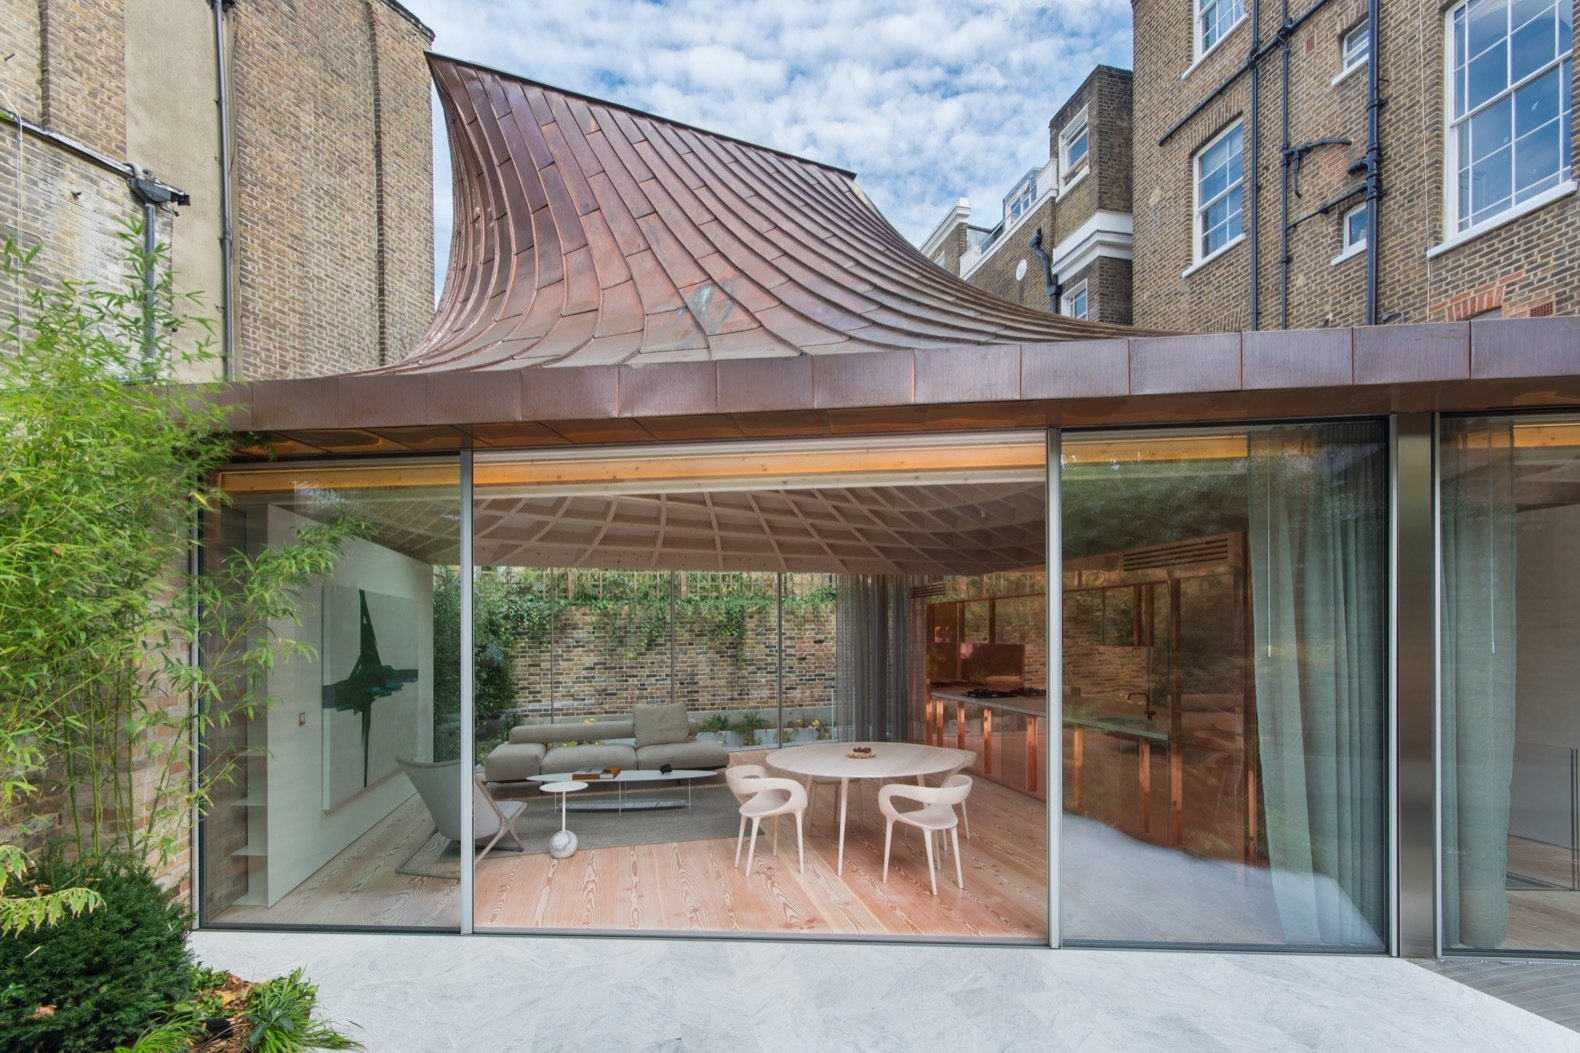 A Dramatic Copper Roof Funnels Light Into This Sculptural